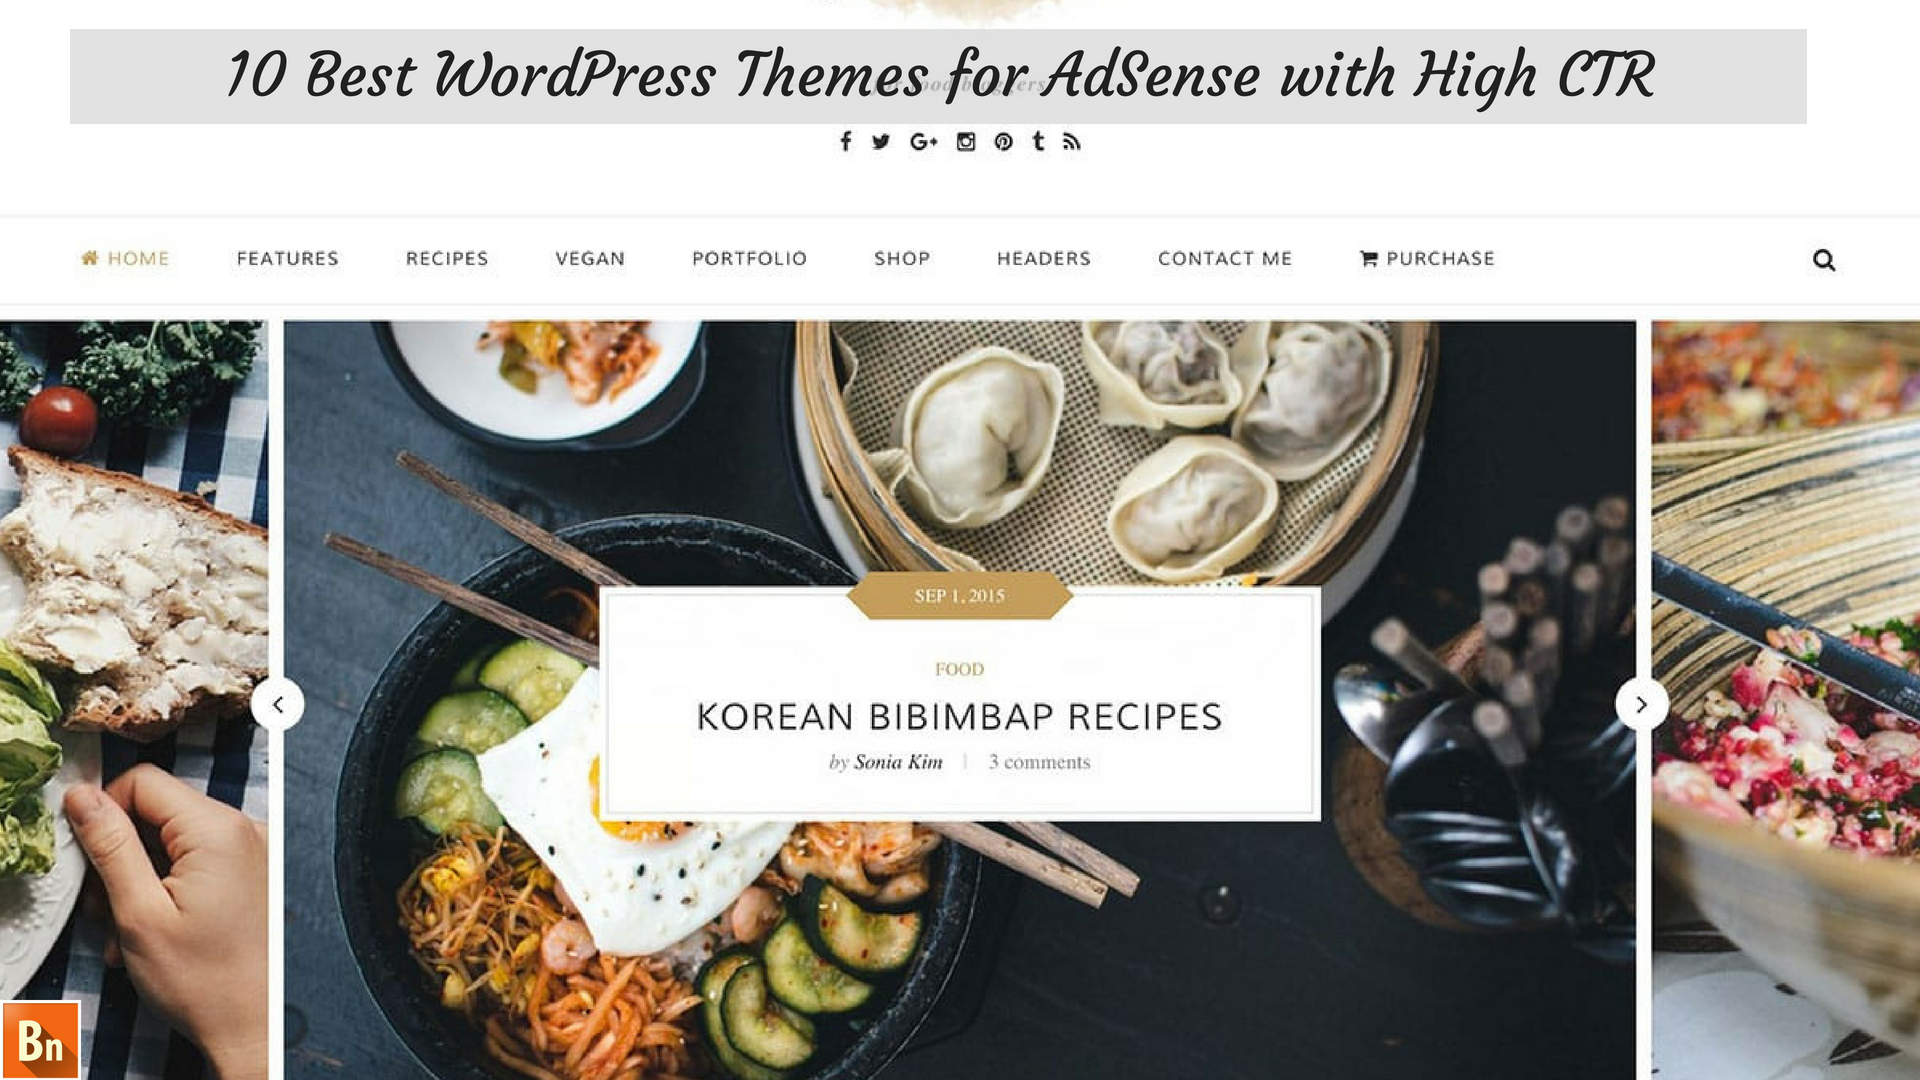 10 Best WordPress Themes for AdSense with High CTR